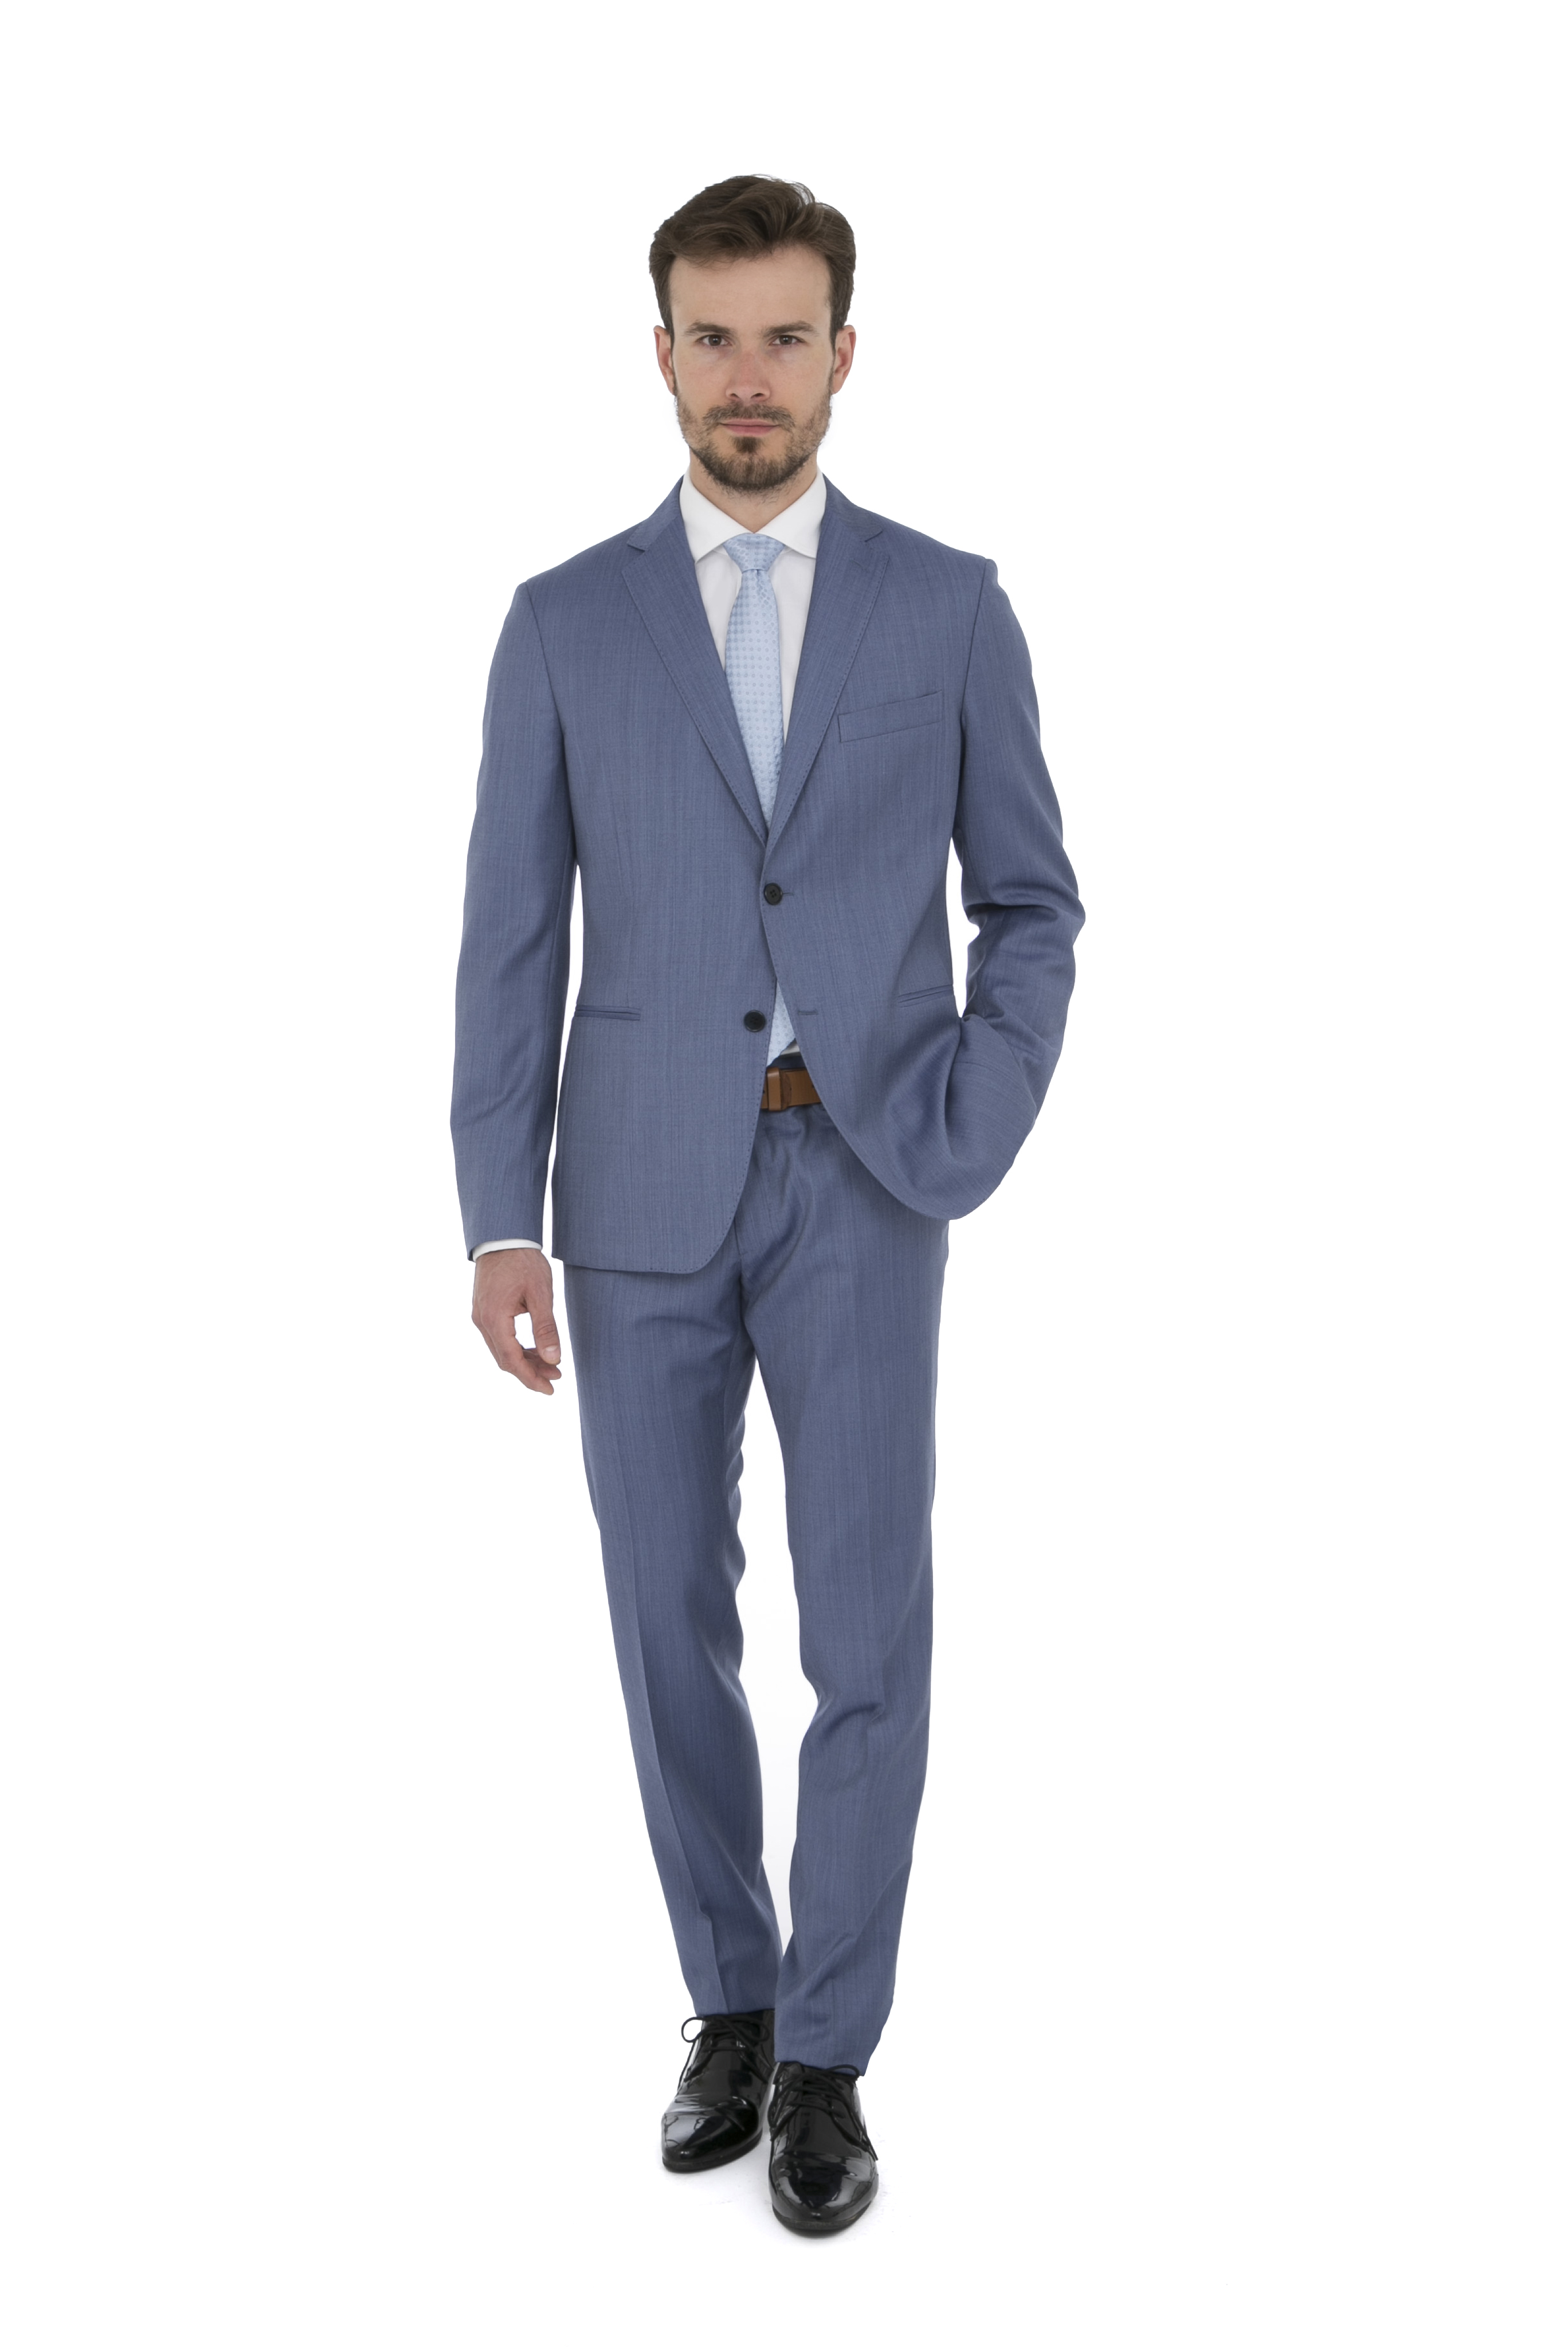 made to measure clothing – Shirts & Ties Venice